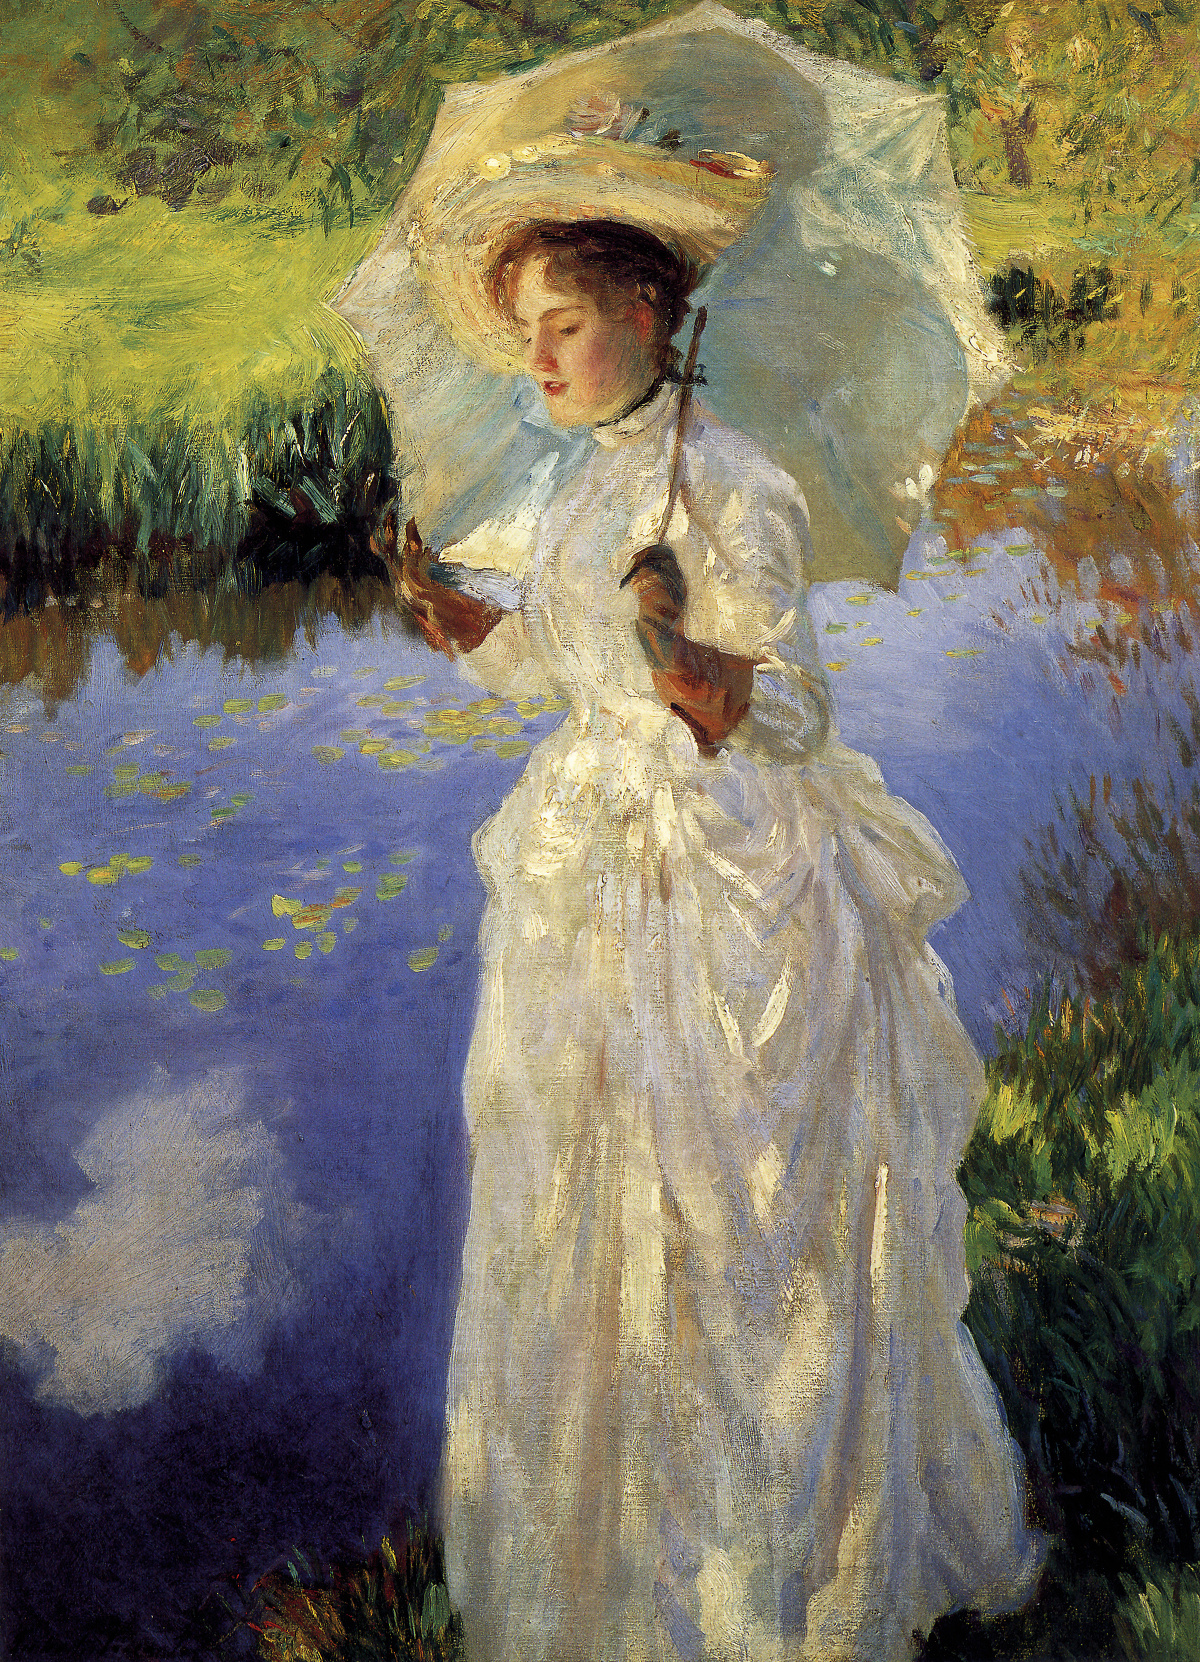 Morning Walk by John Singer Sargent, 1888